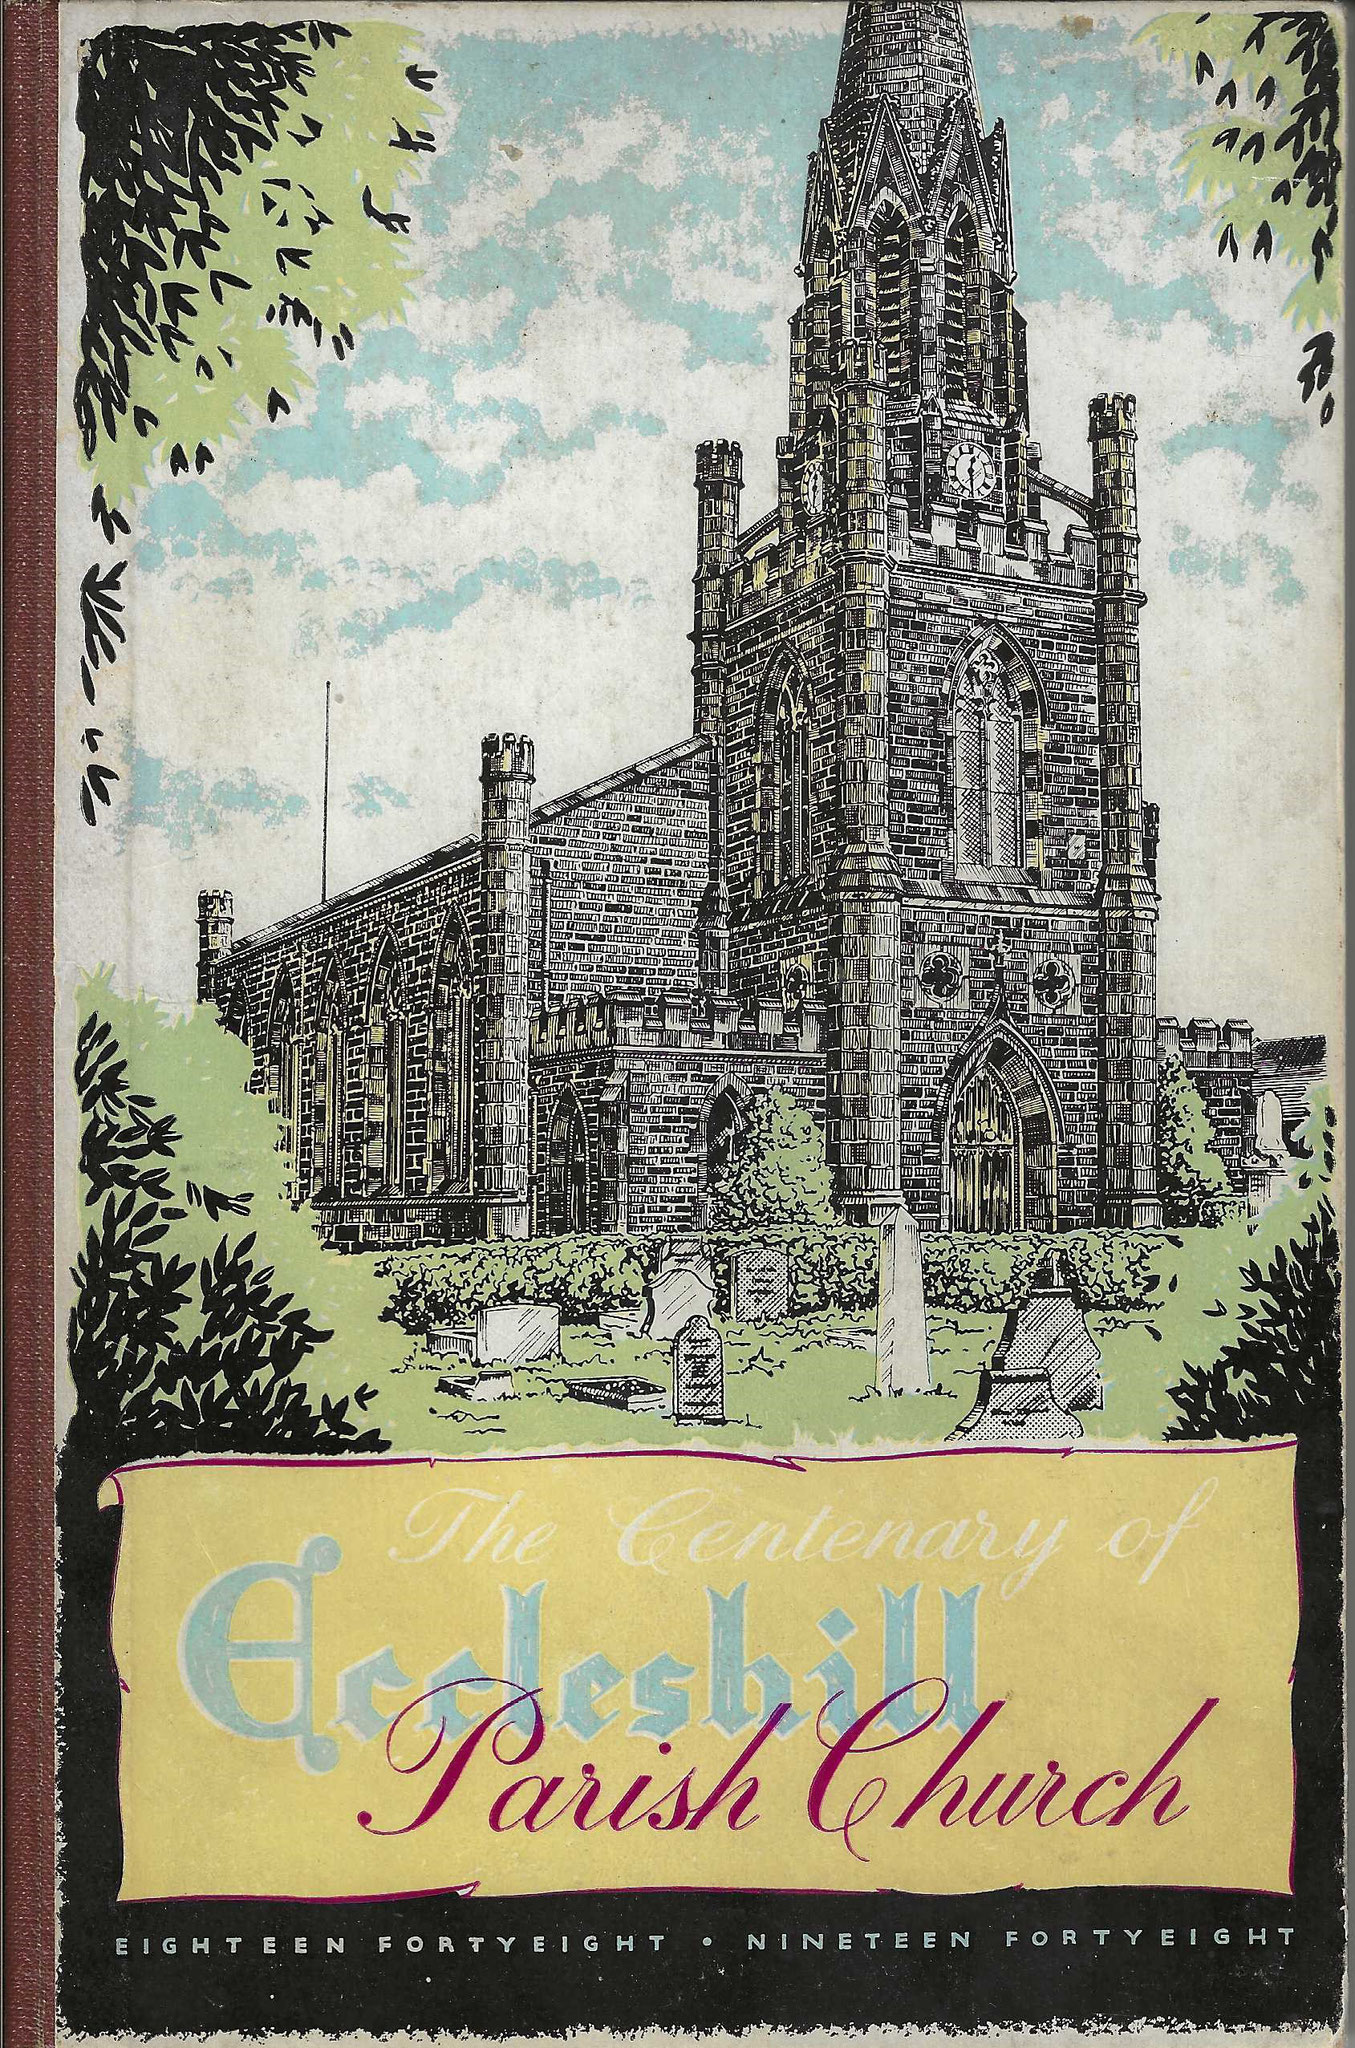 The Centenary History of Eccleshill Parish Church, 1948 (collection P. Reinders)